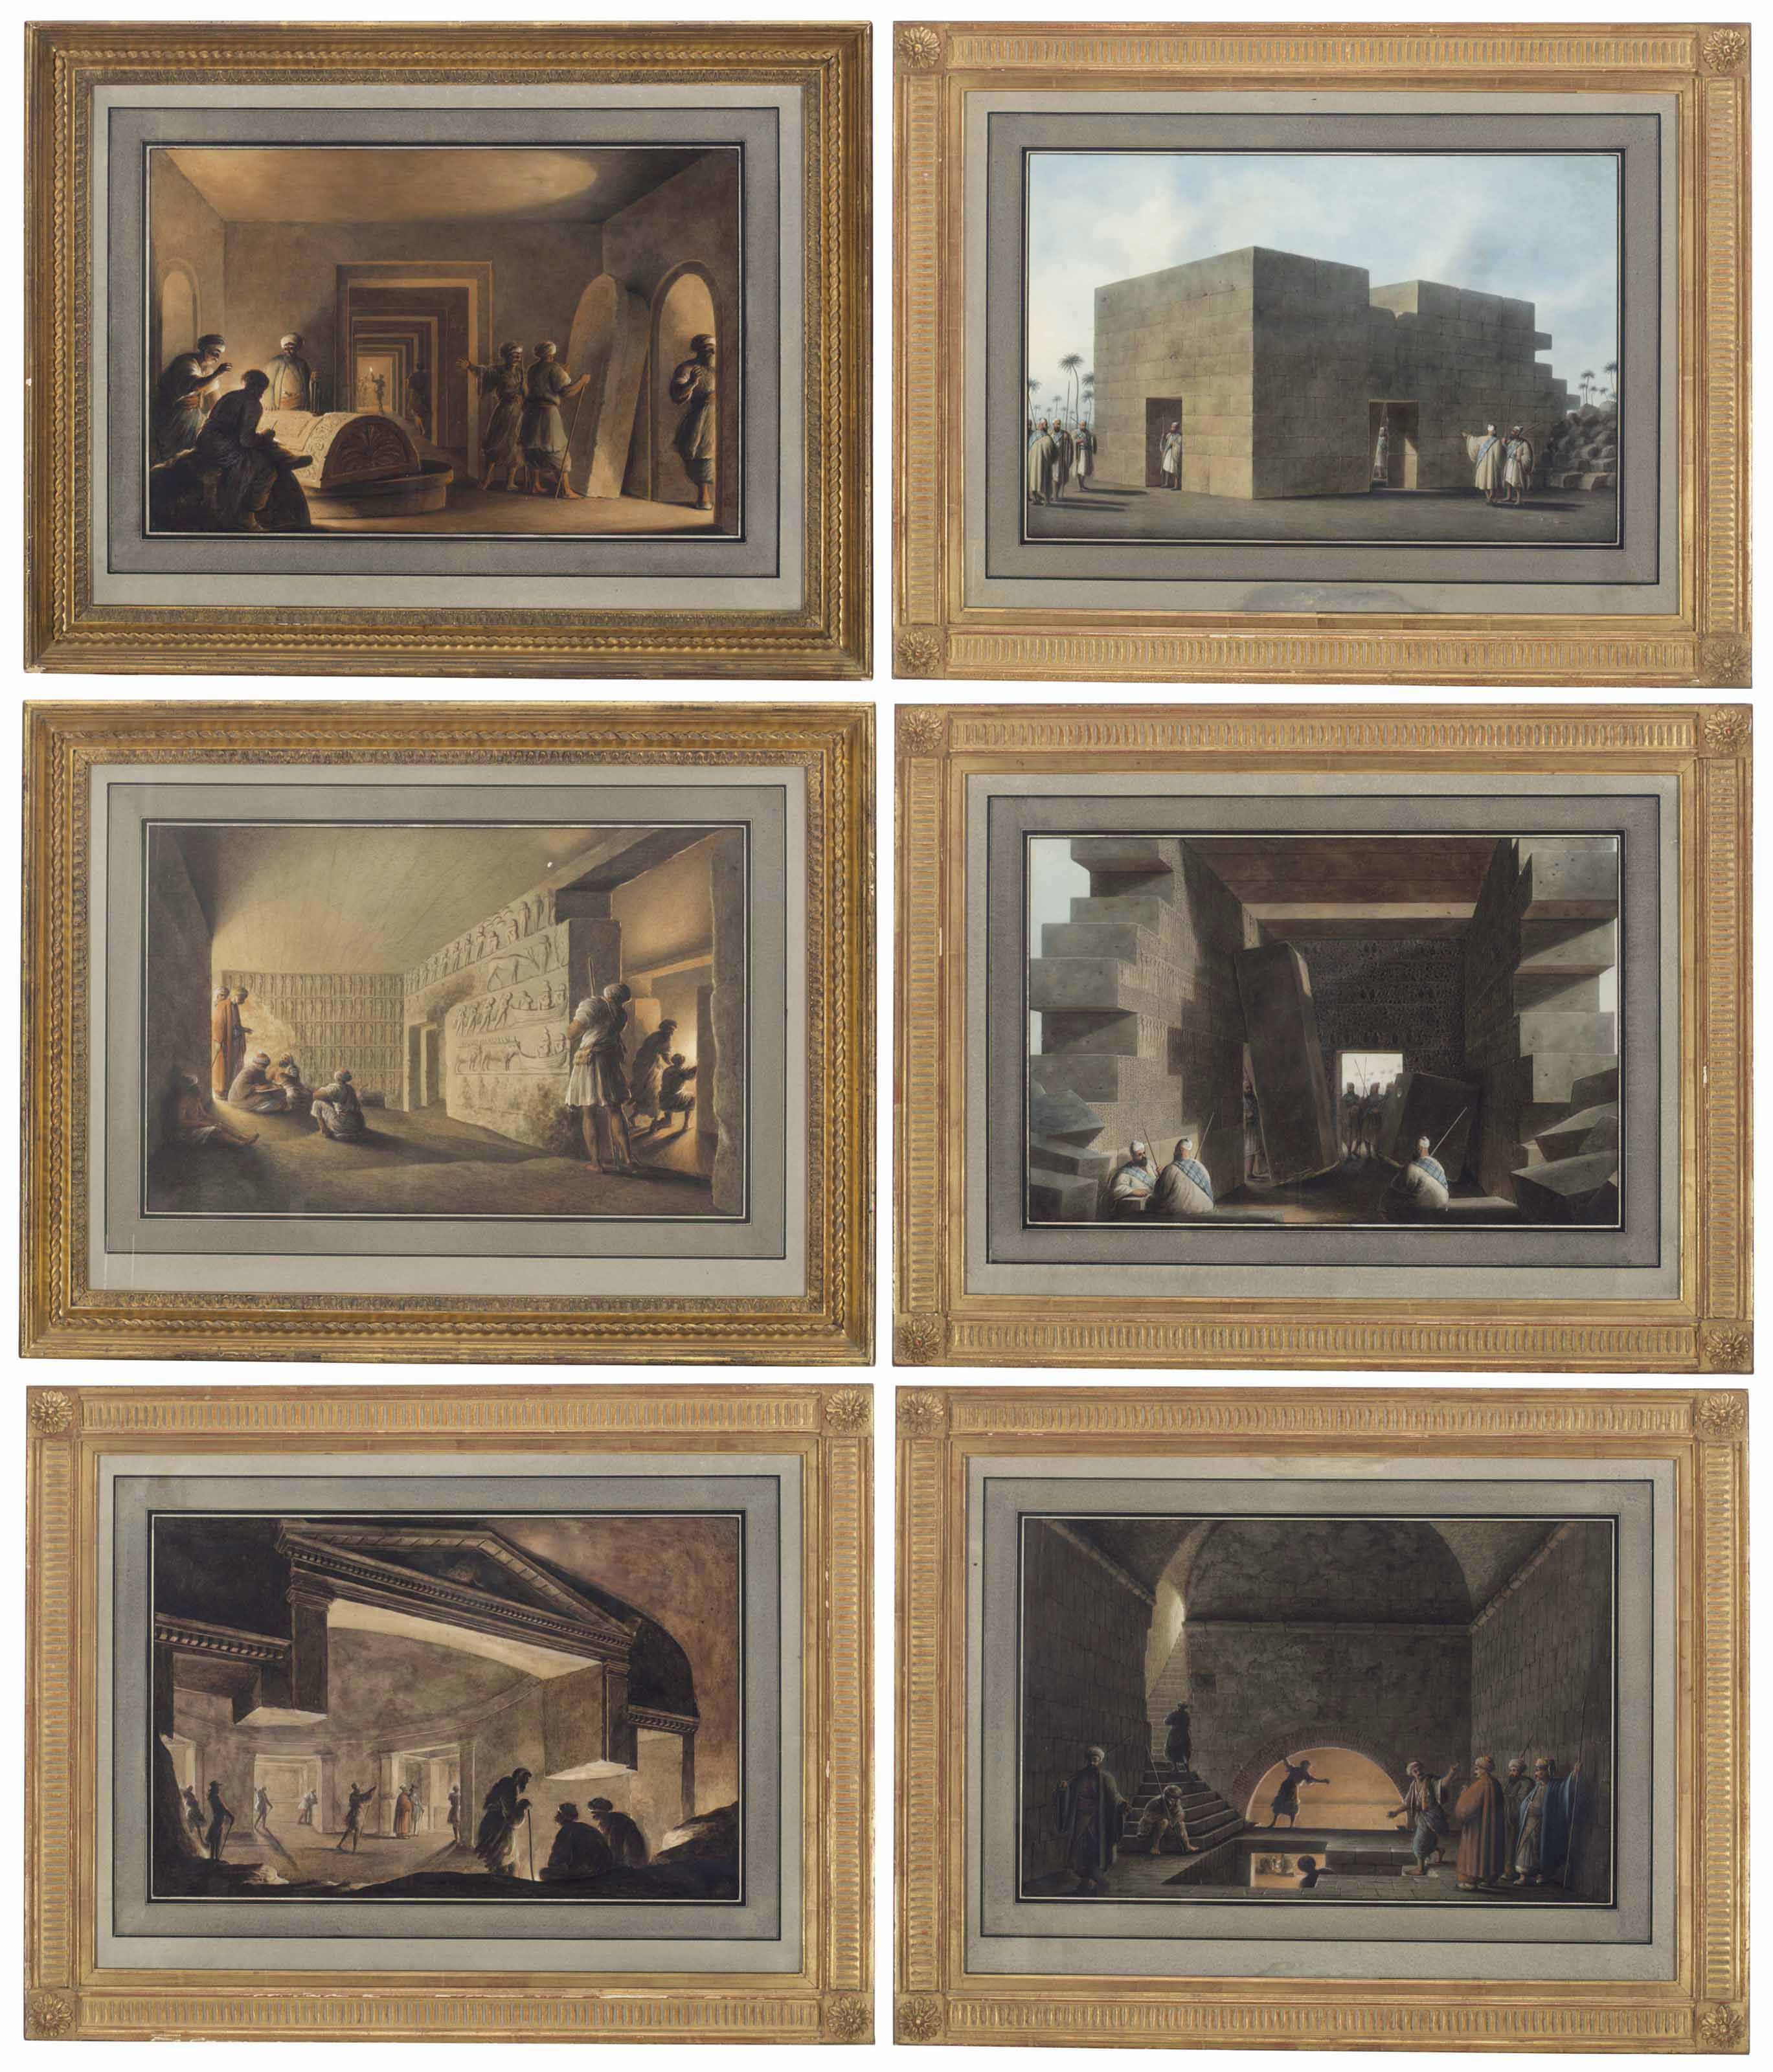 Excavations of Tombs and Ancient Buildings, Libya (six works)